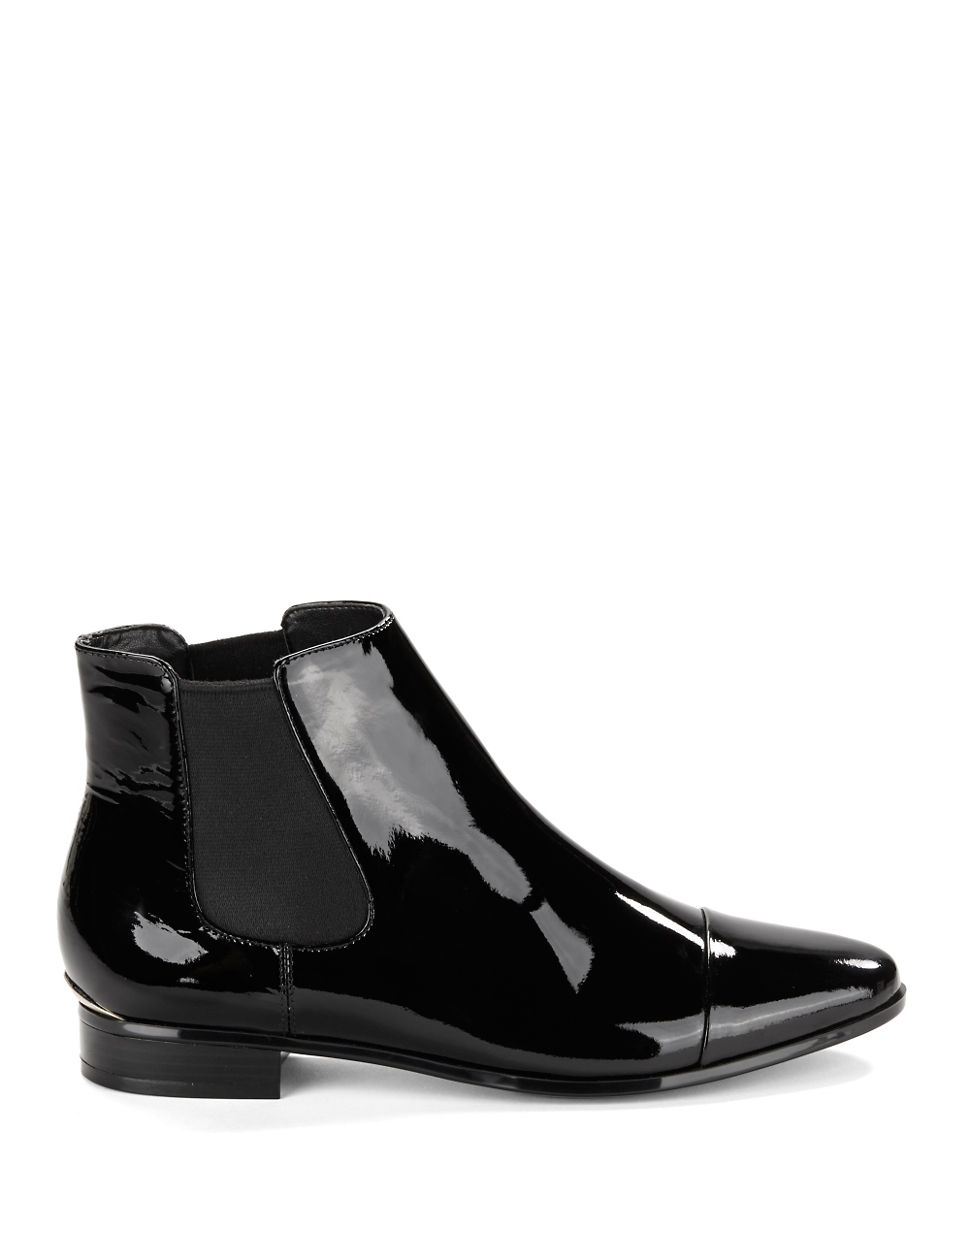 Calvin klein Finilla Faux Patent Leather Booties in Black ...